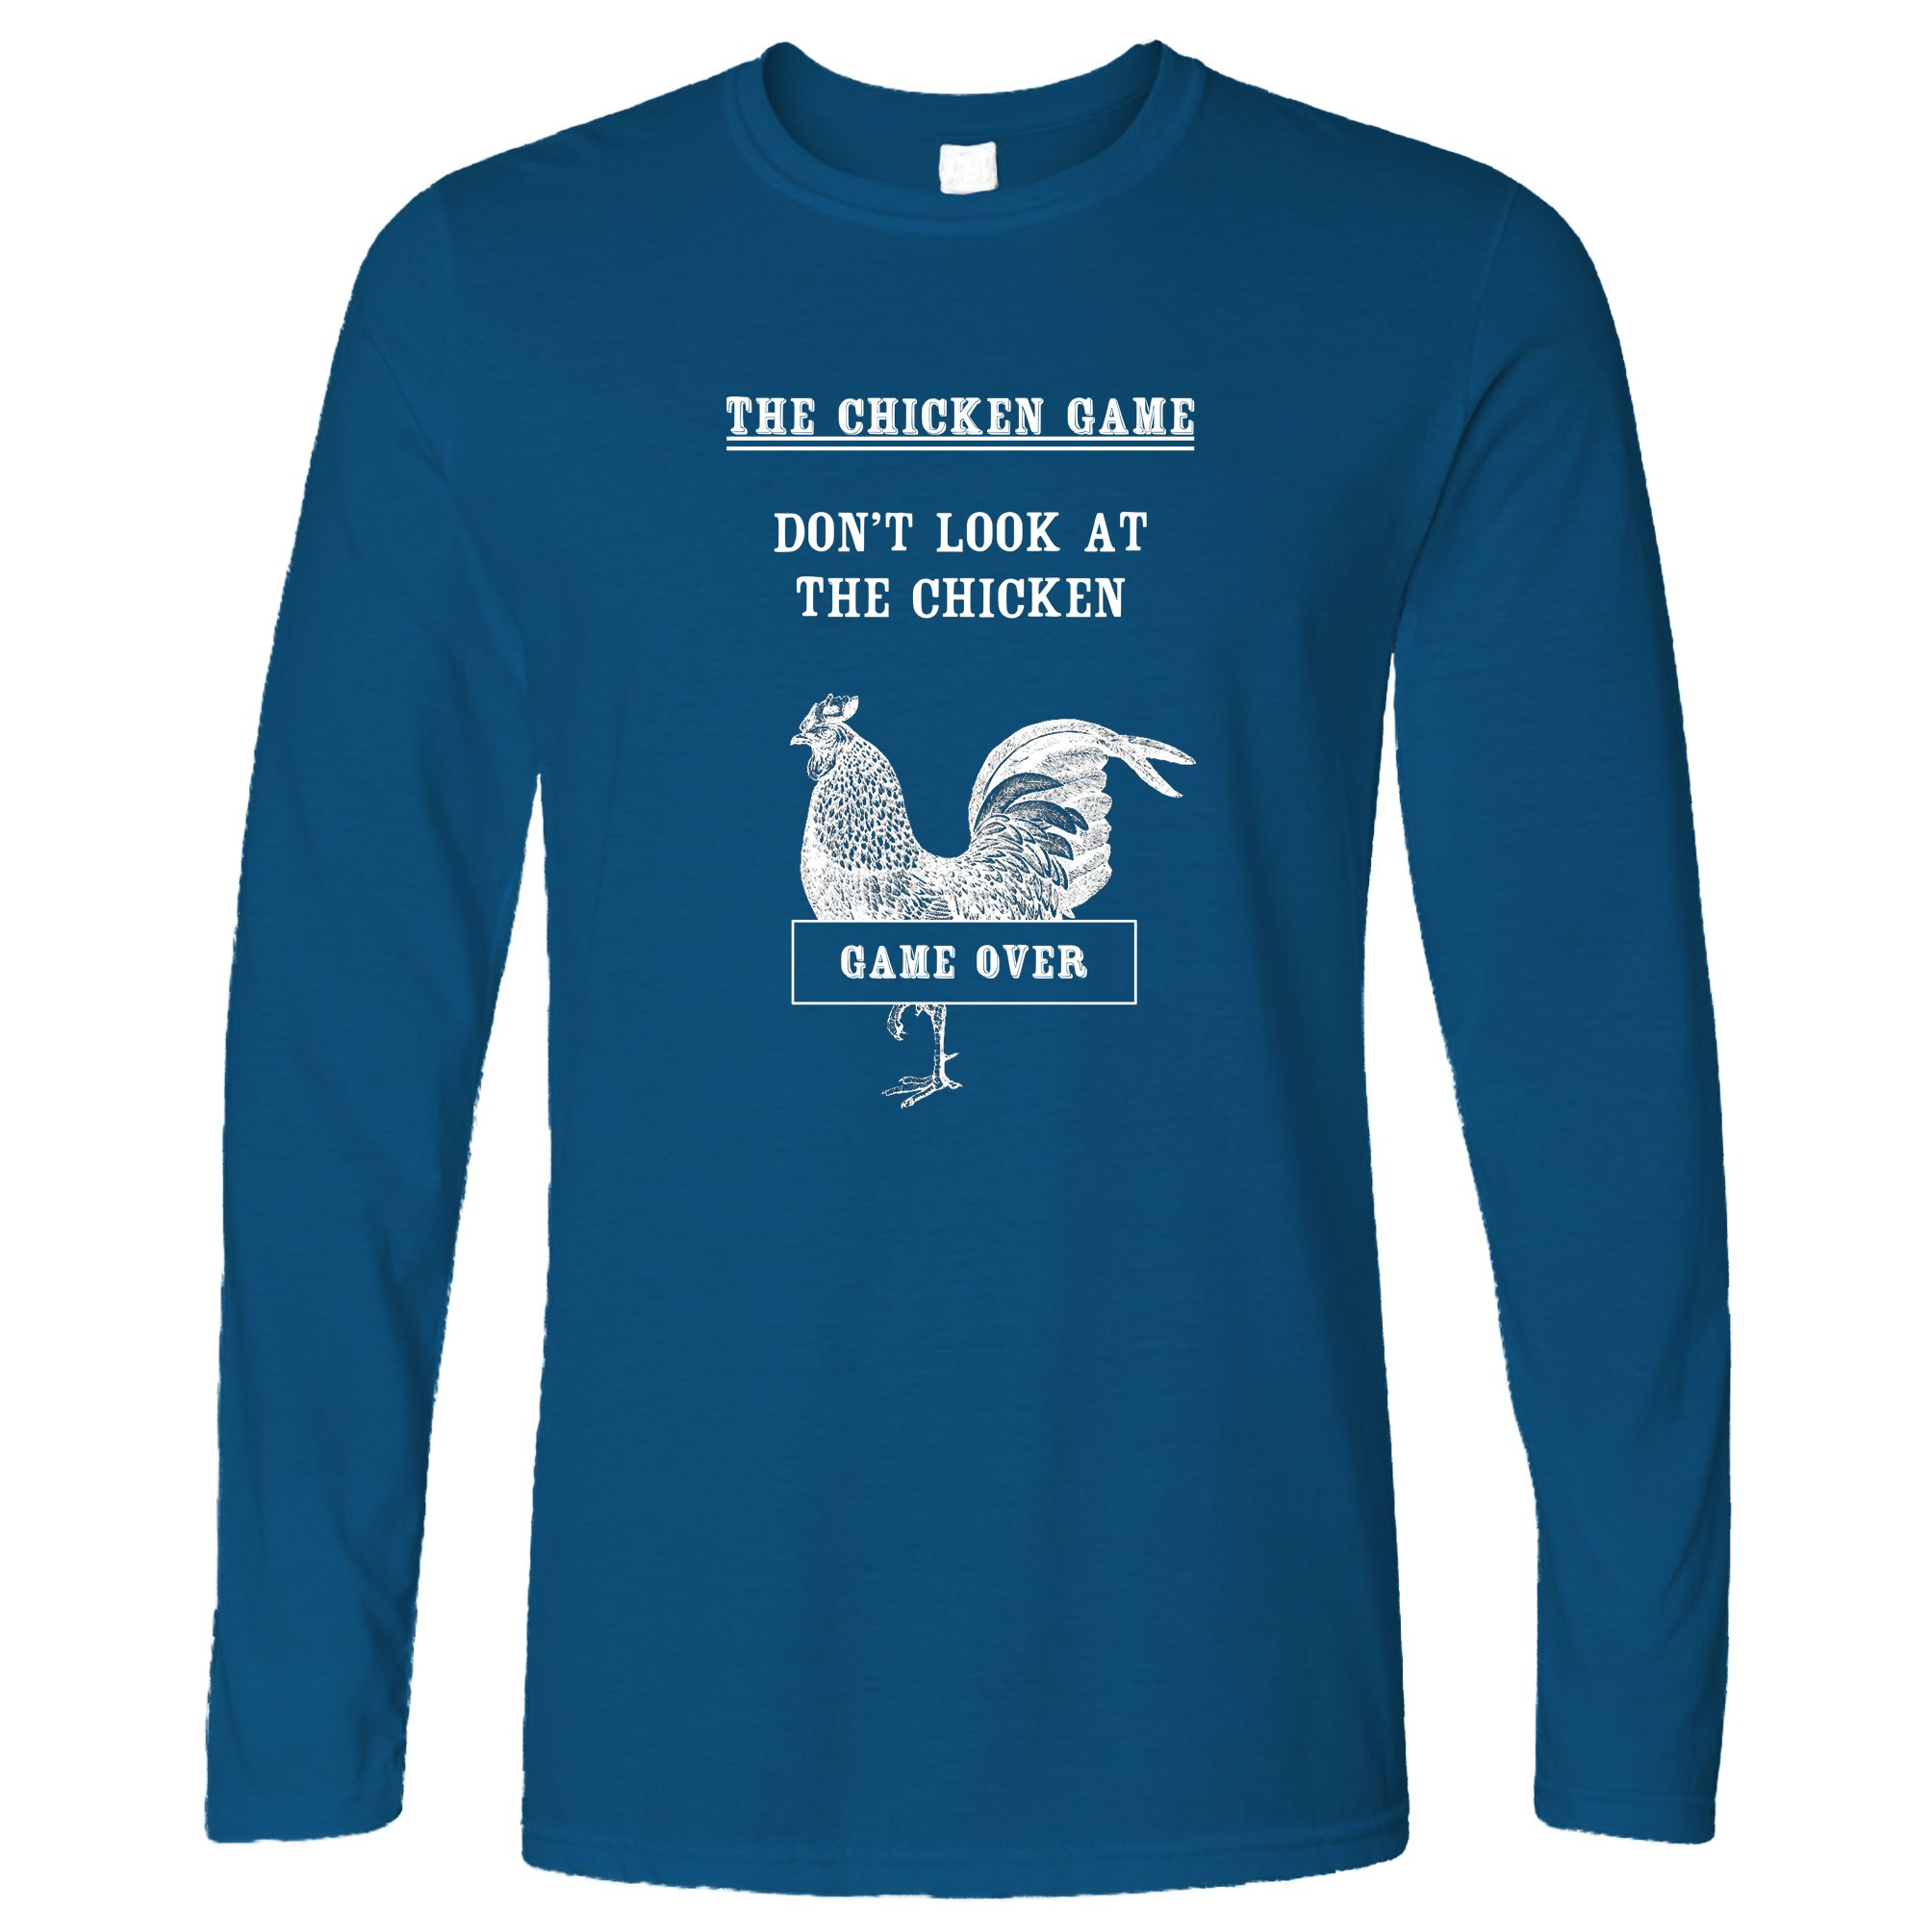 Funny Long Sleeve Don't Look at The Chicken Game Joke Royal Blue XXL